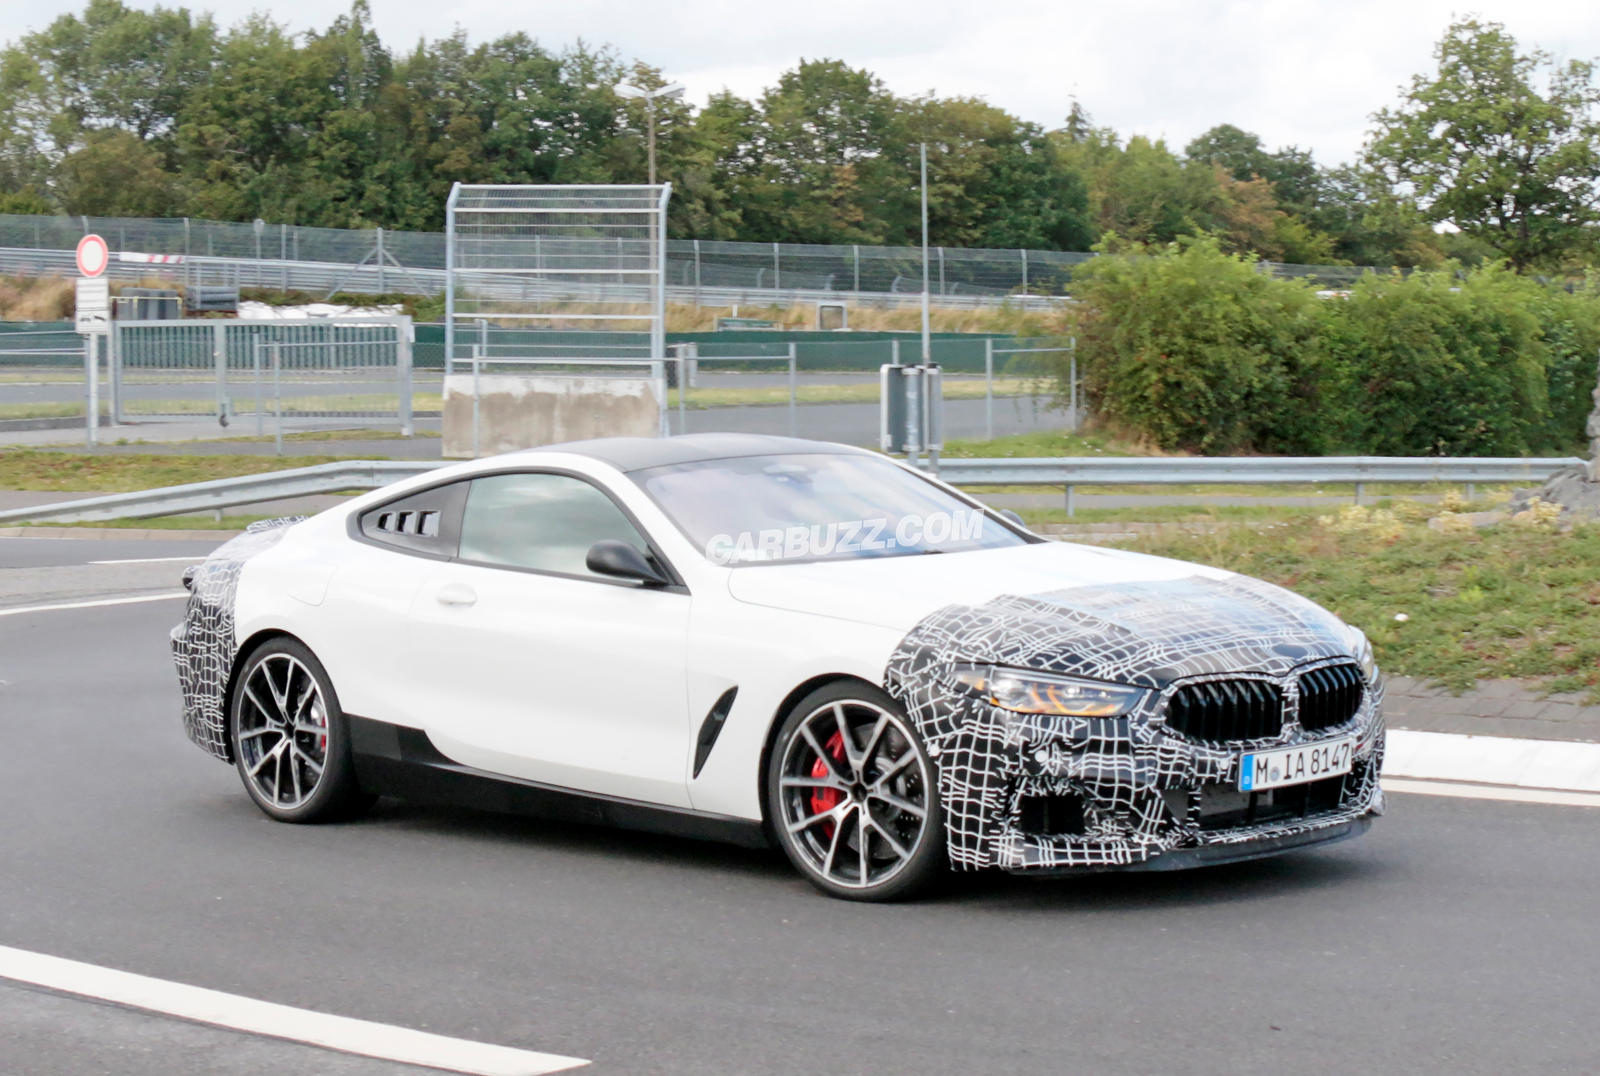 BMW mid-engined supercar